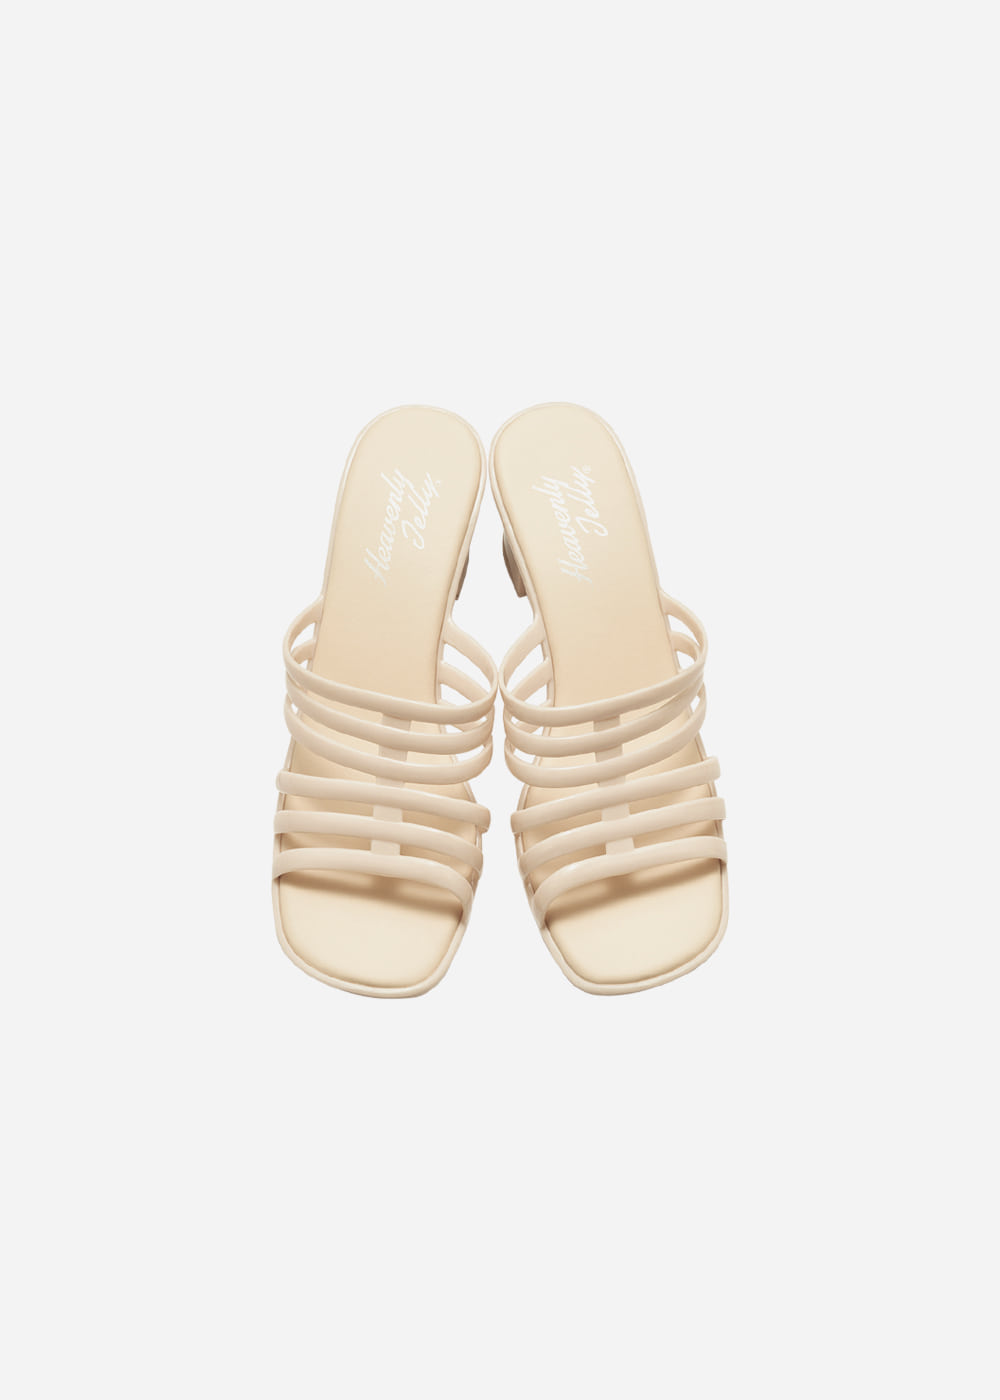 [Heavenly Jelly] Wedge Plain Light Beige